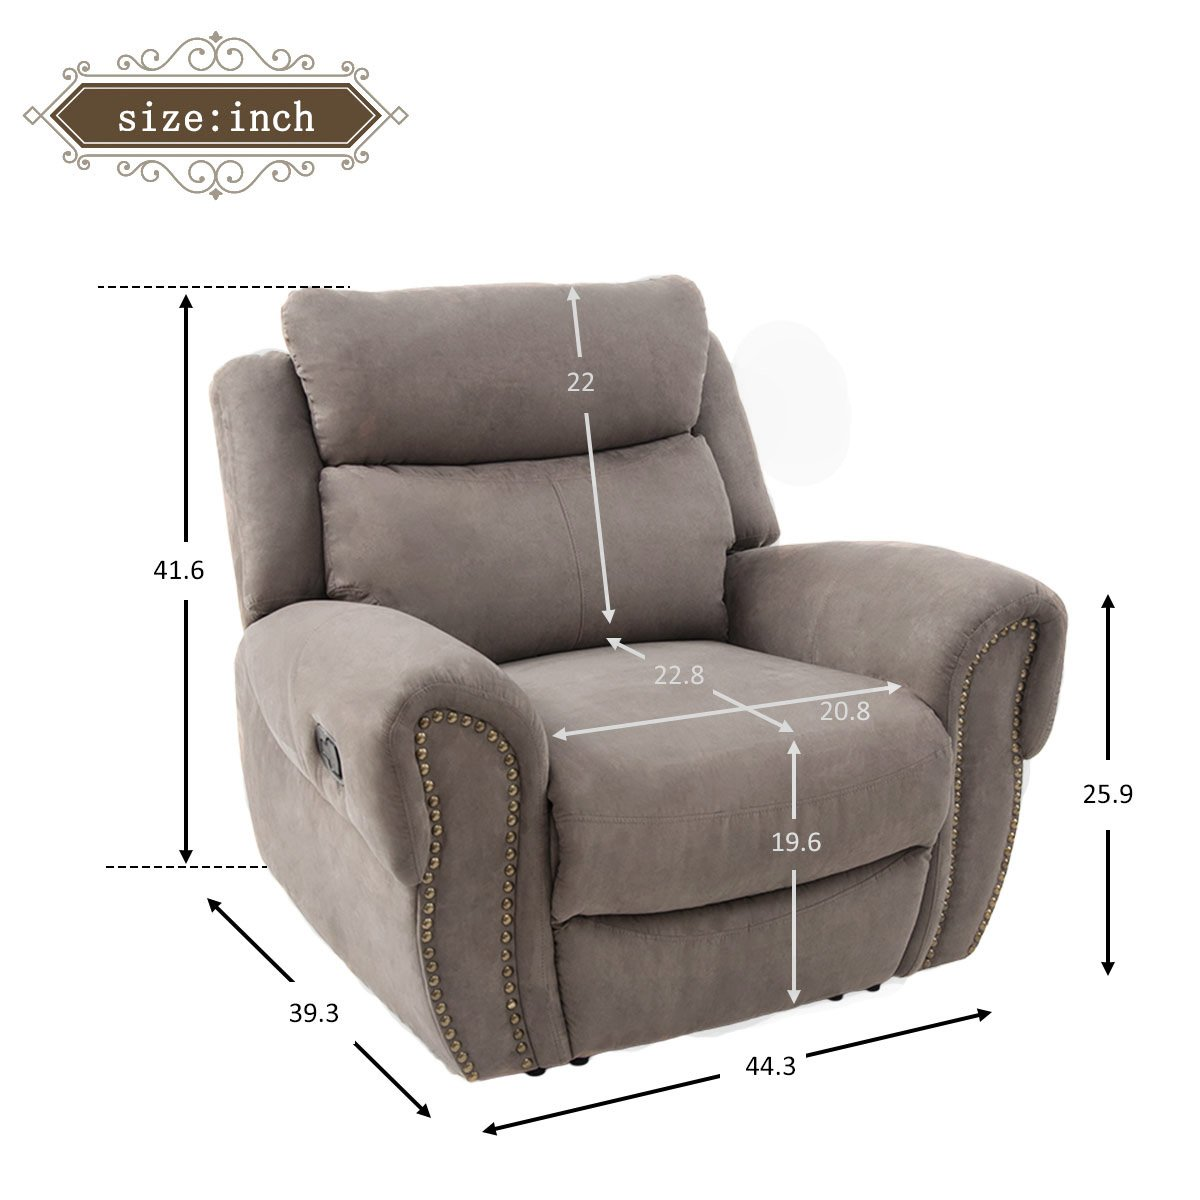 Harper Bright Designs Sectional Sofa Set Including Chair, Loveseat and 3-Seat Sofa Recliner Chair